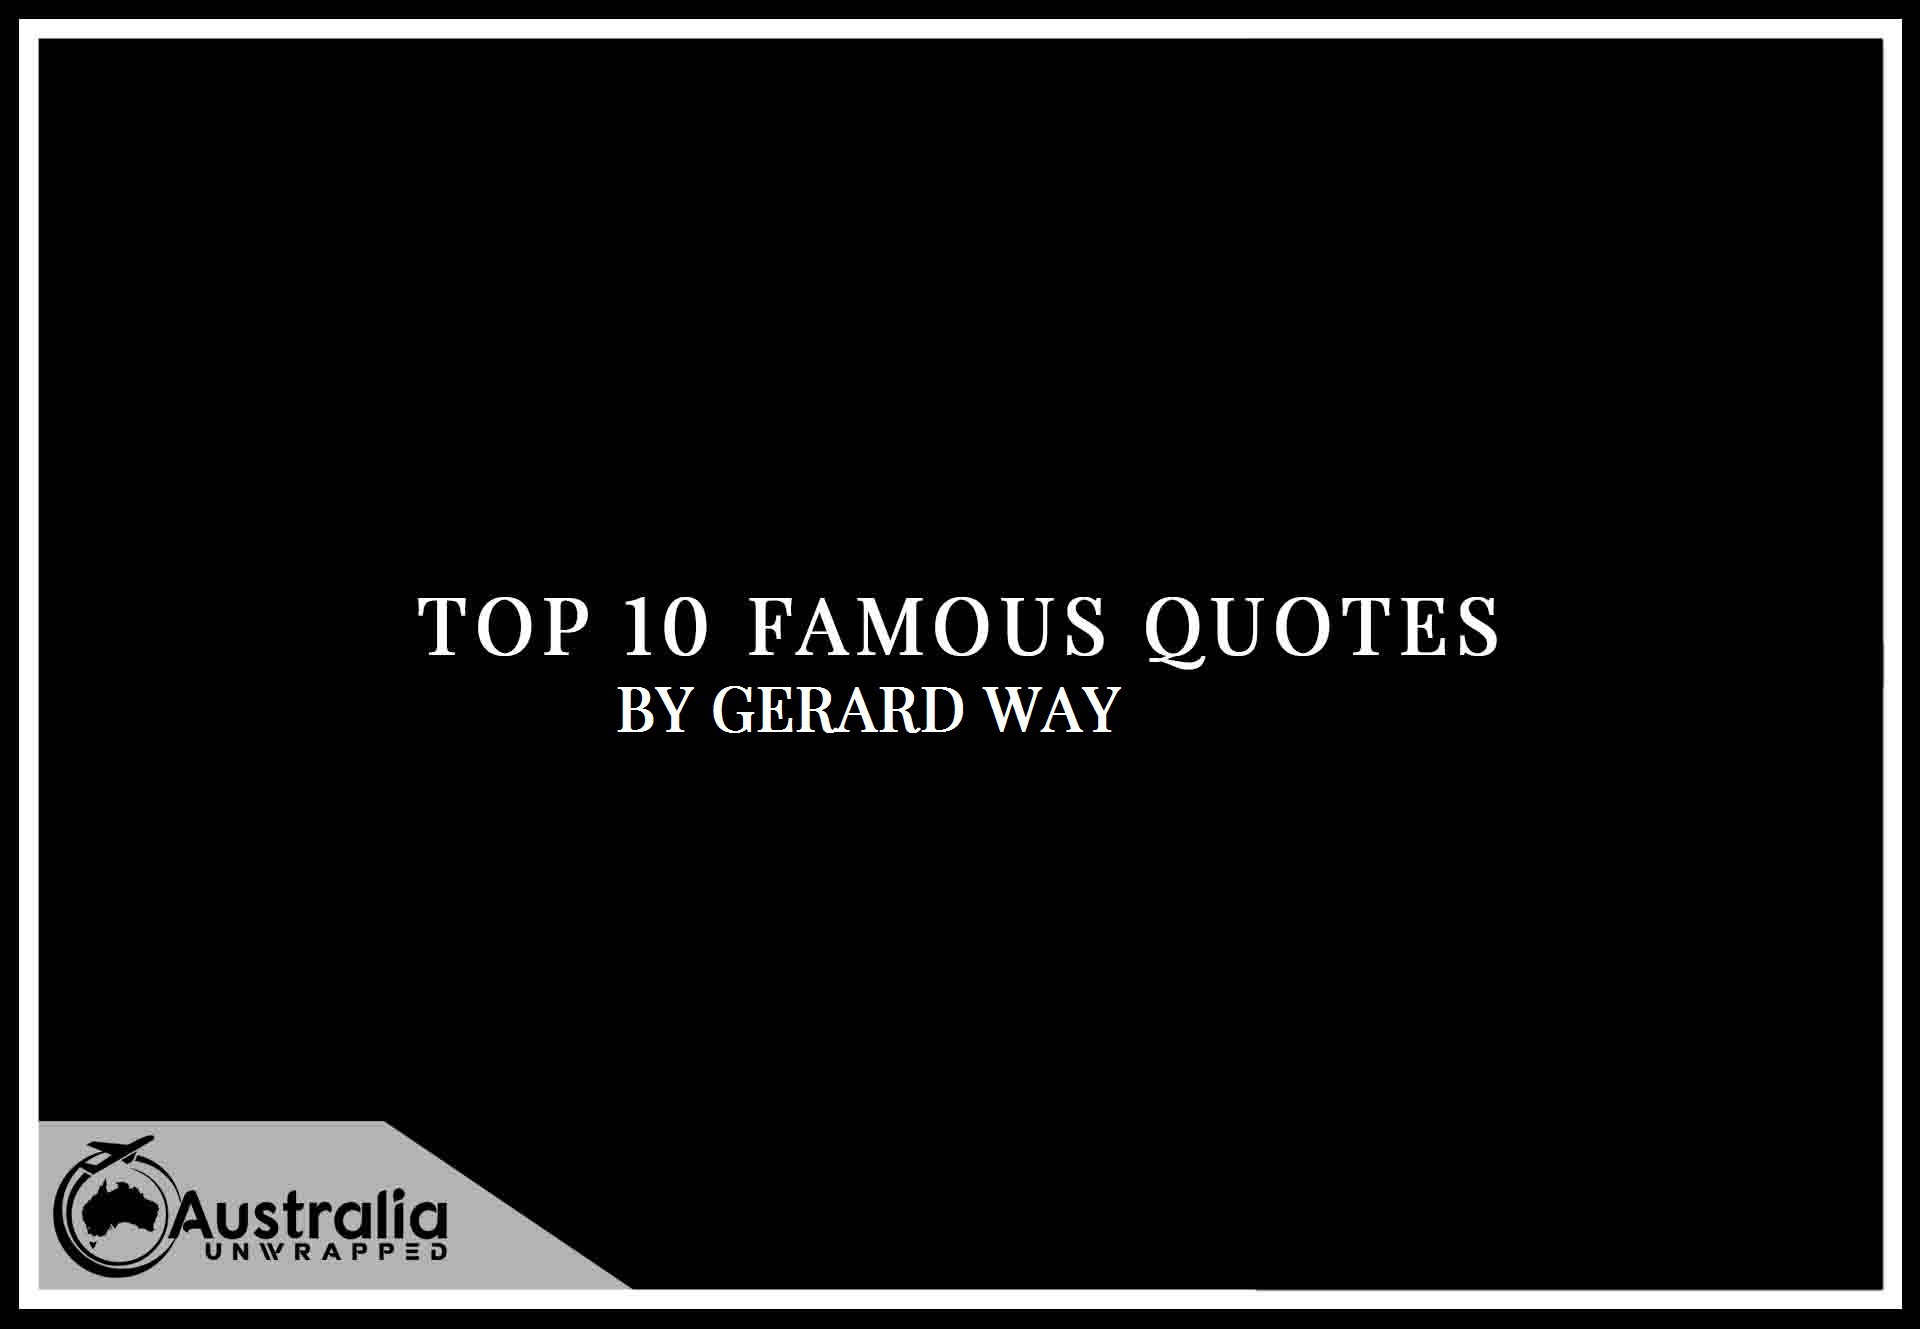 Gerard Way's Top 10 Popular and Famous Quotes